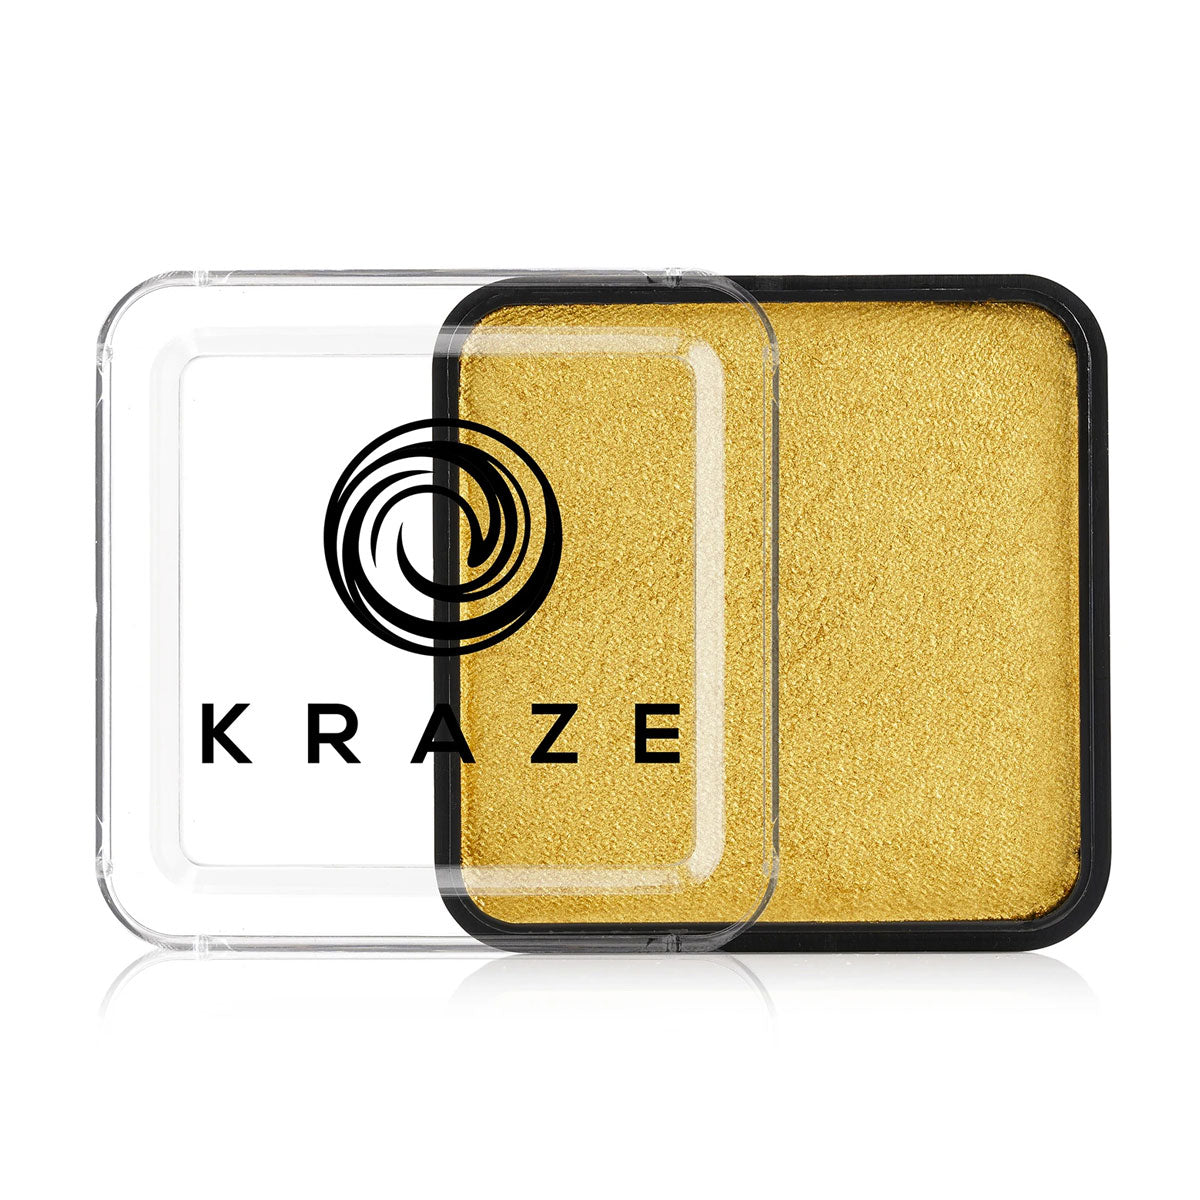 Metallic Gold Square 25g - Kraze